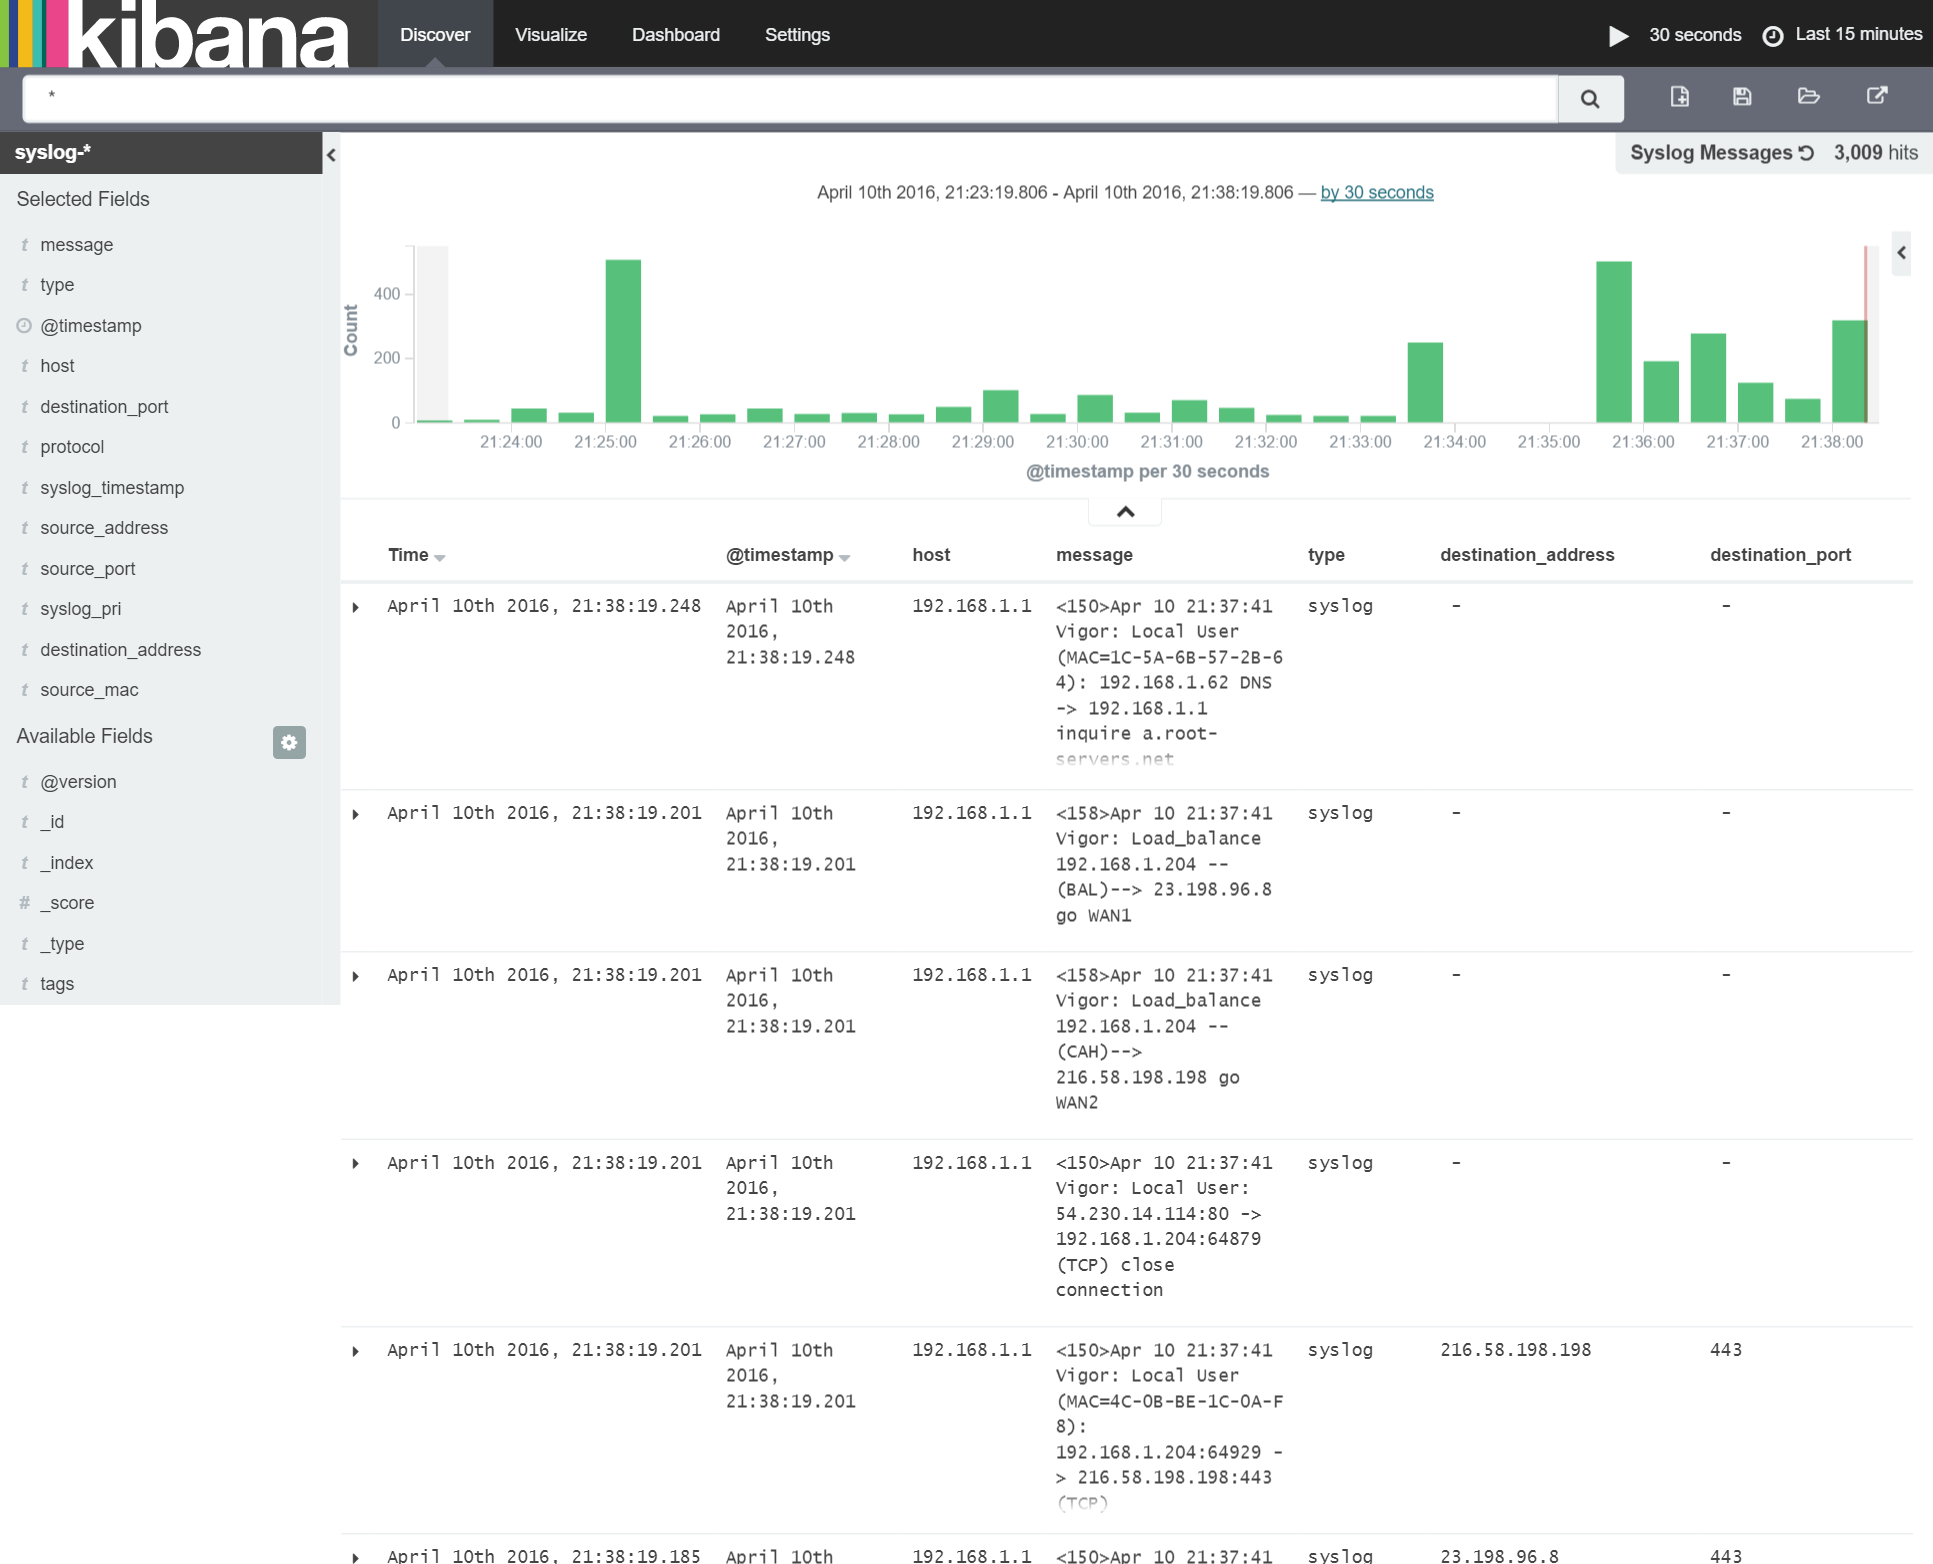 Kibana Adding New Fields To Syslog Messages Saved Search